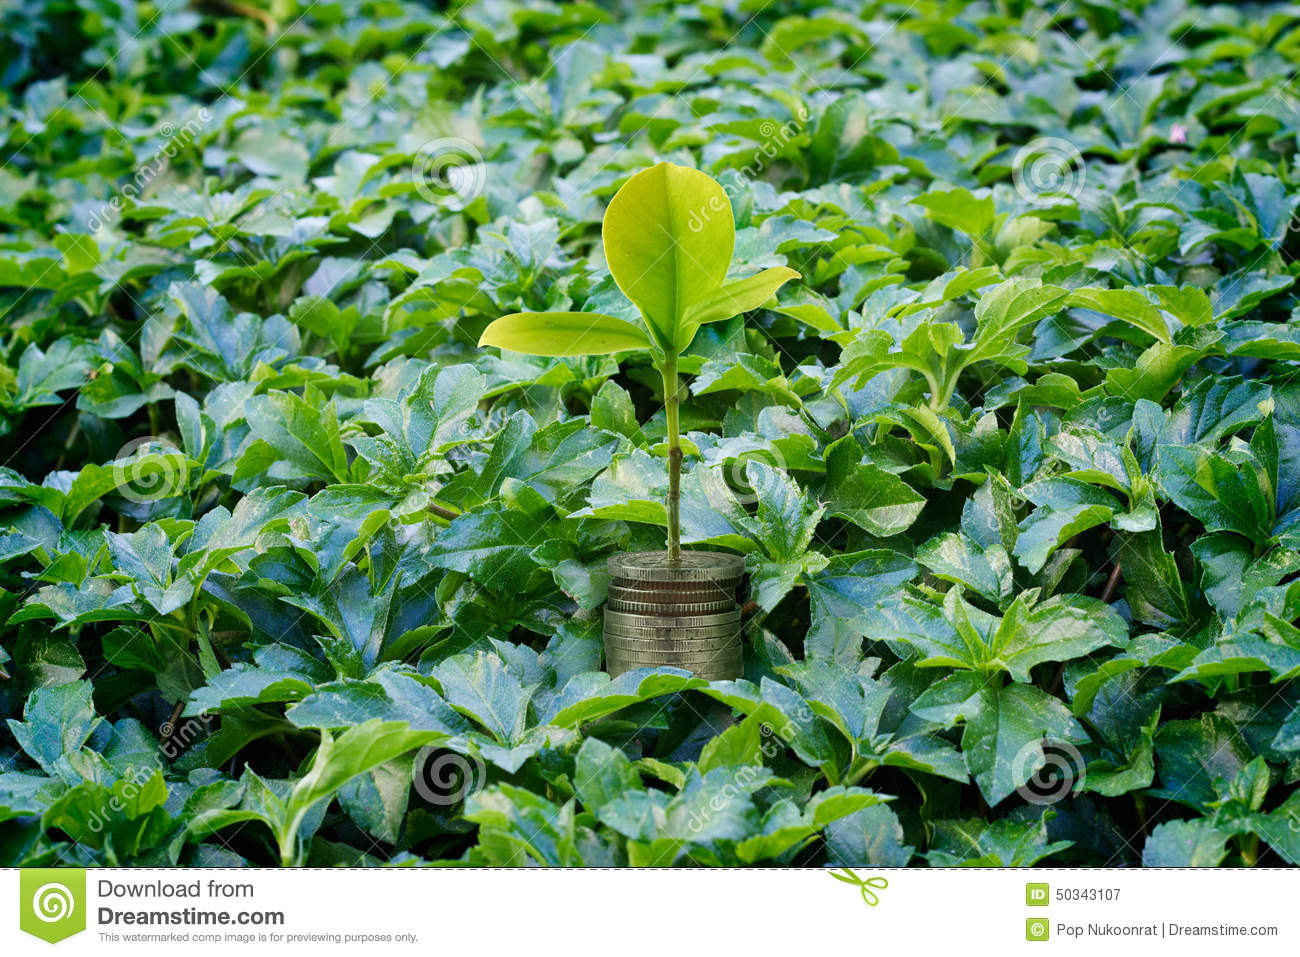 Fresh money plant growing money growth business concept stock photo image 50343107 - Successful flower growing business ...